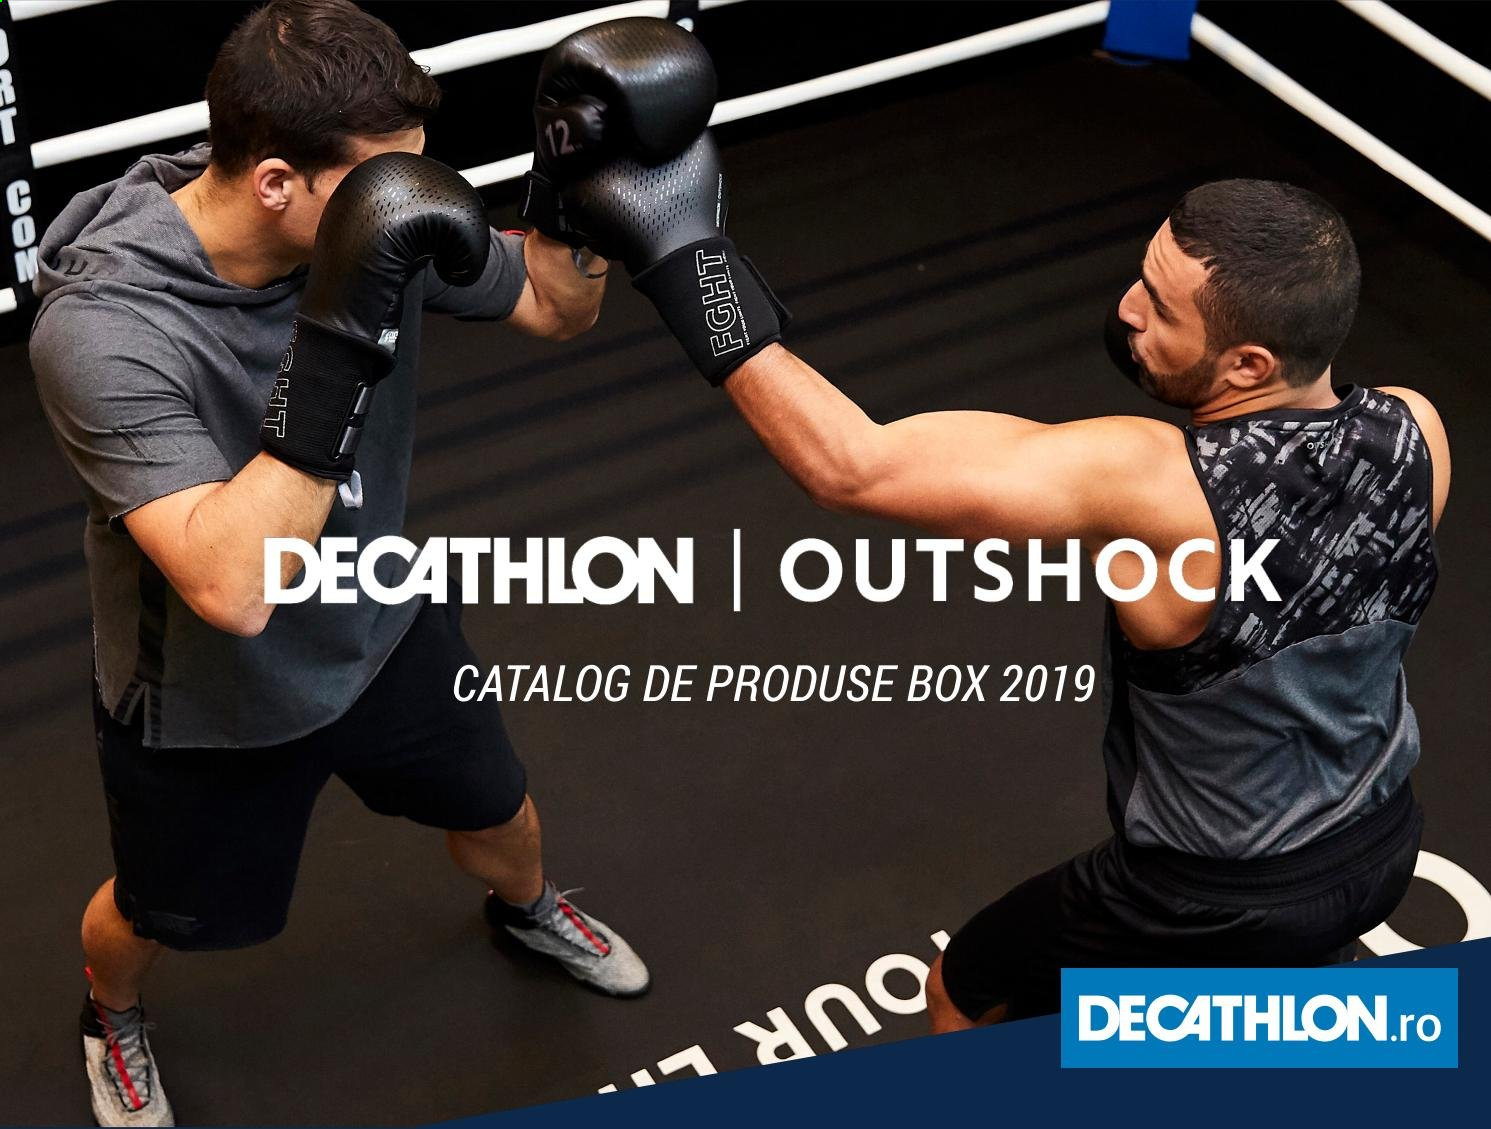 Cataloage Decathlon. Pagina 1.